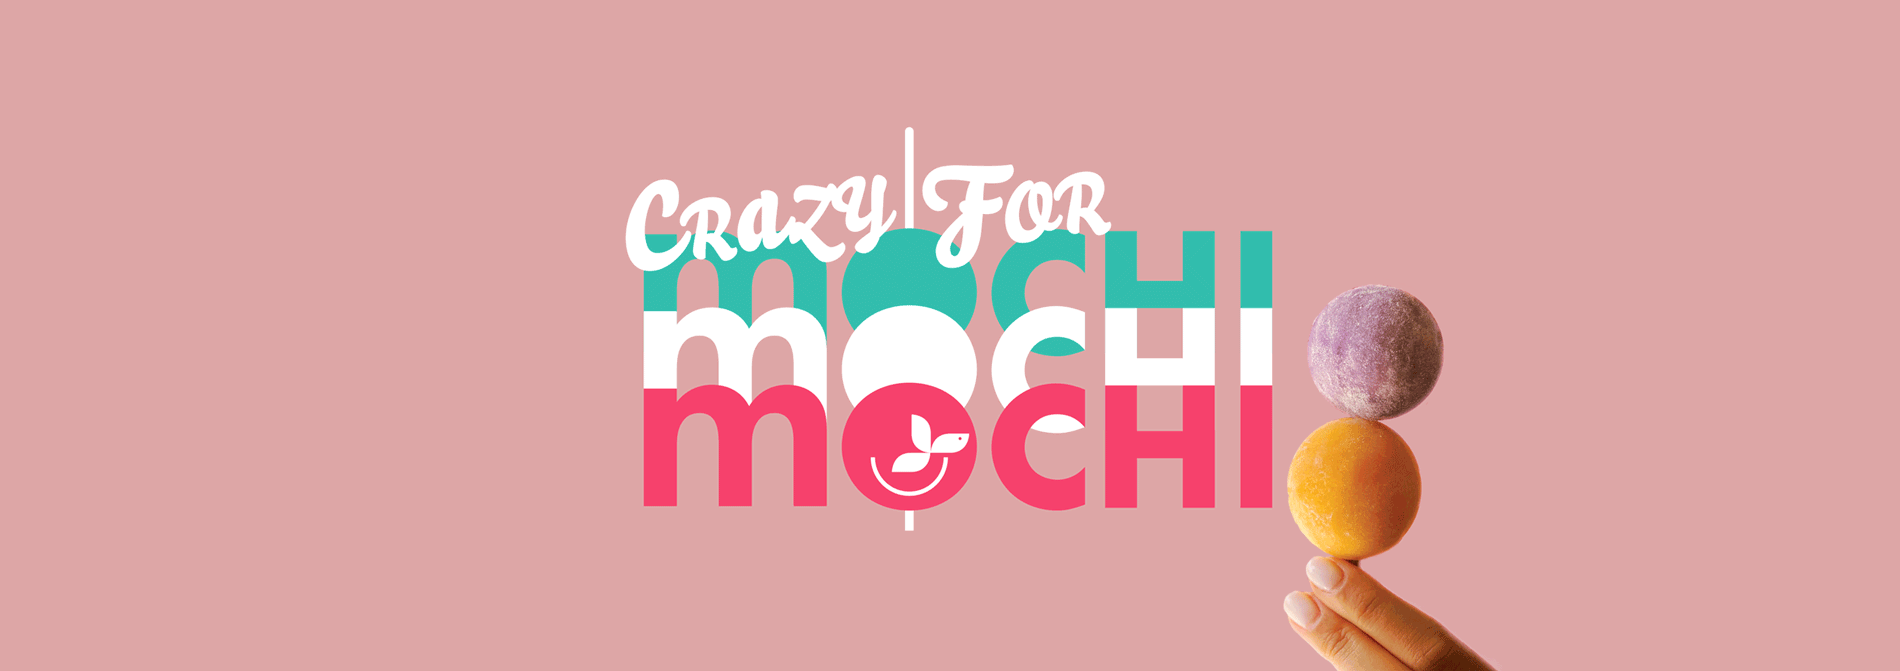 Crazy for Mochi sticker by Pokeloha